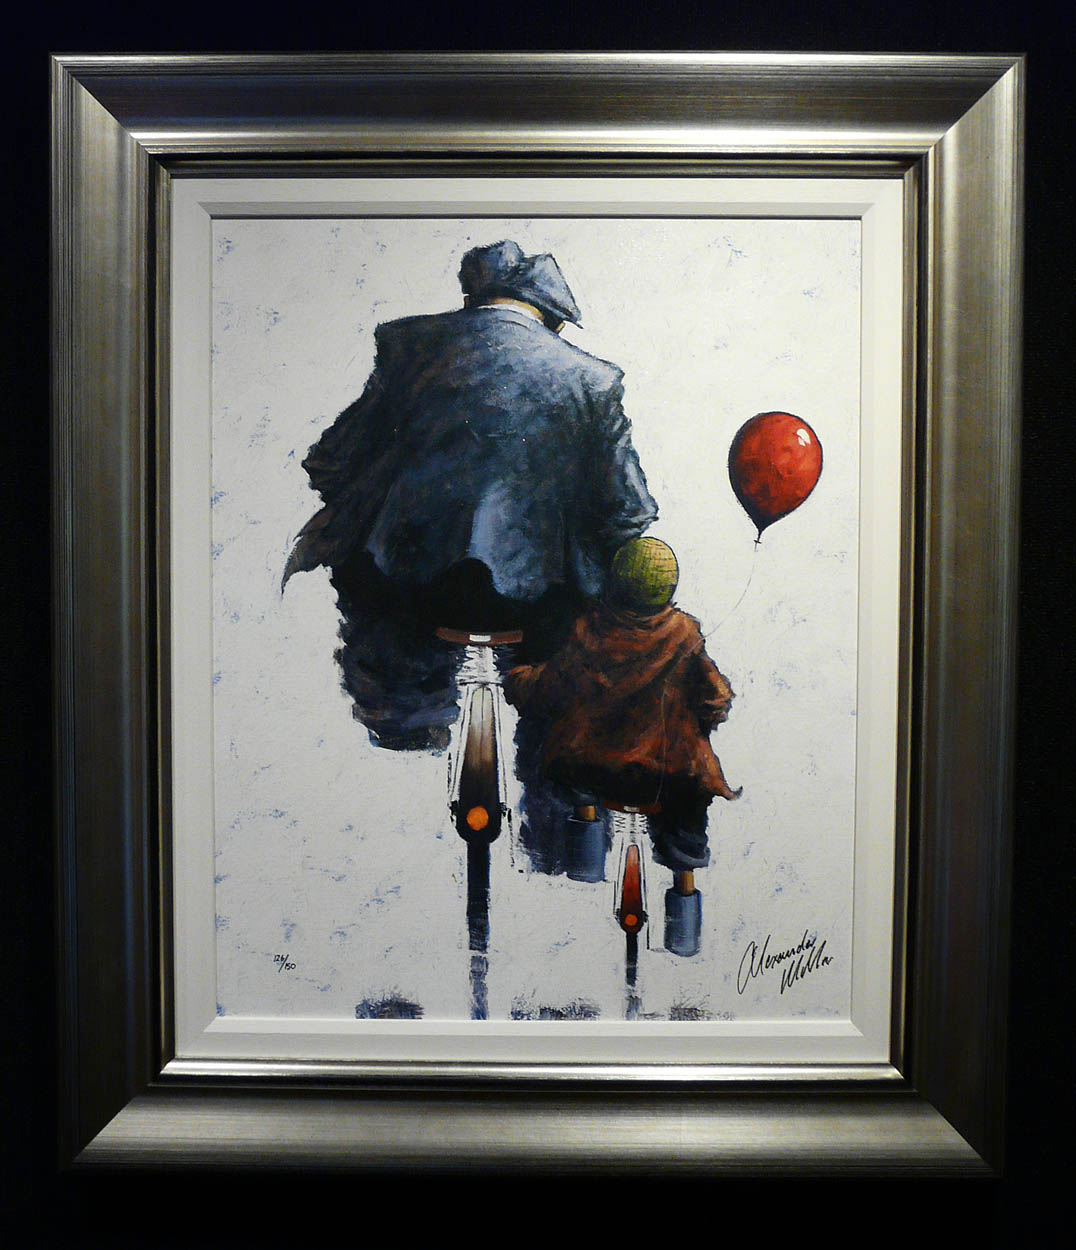 Wait for Me by Alexander Millar